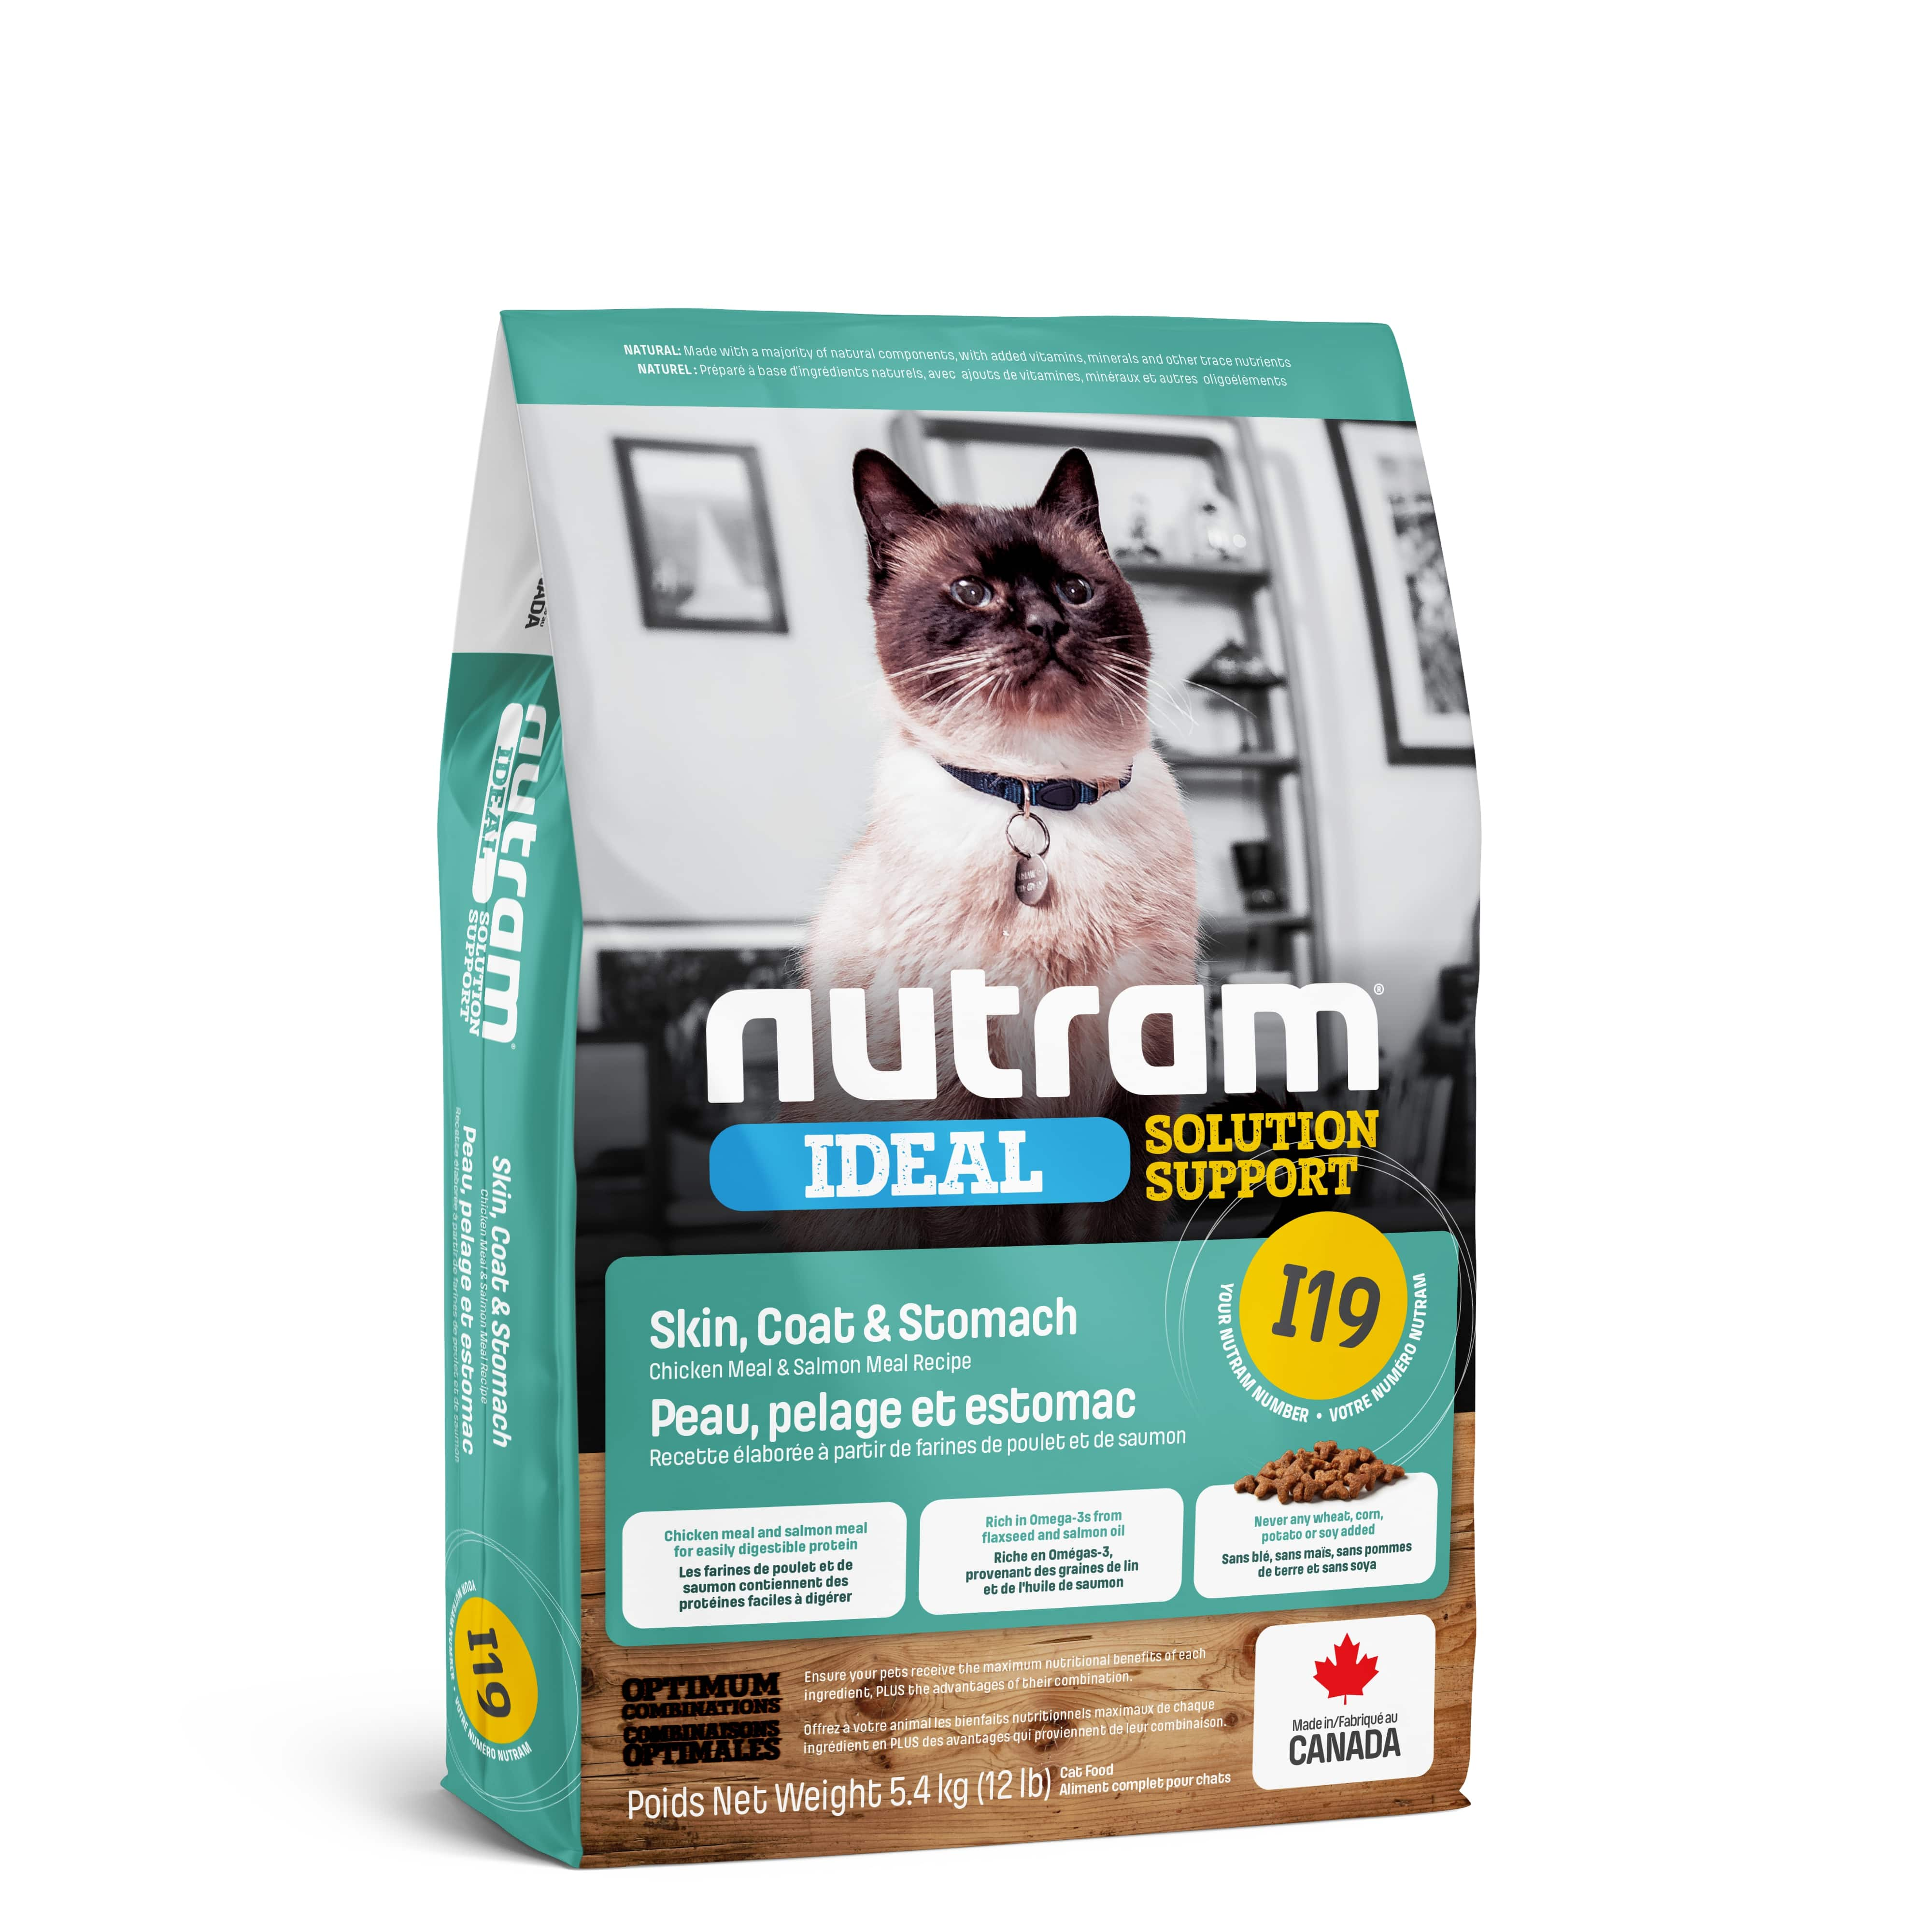 I19 Nutram Ideal Solution Support® Sensetive Coat, Skin, Stomach Cat Food